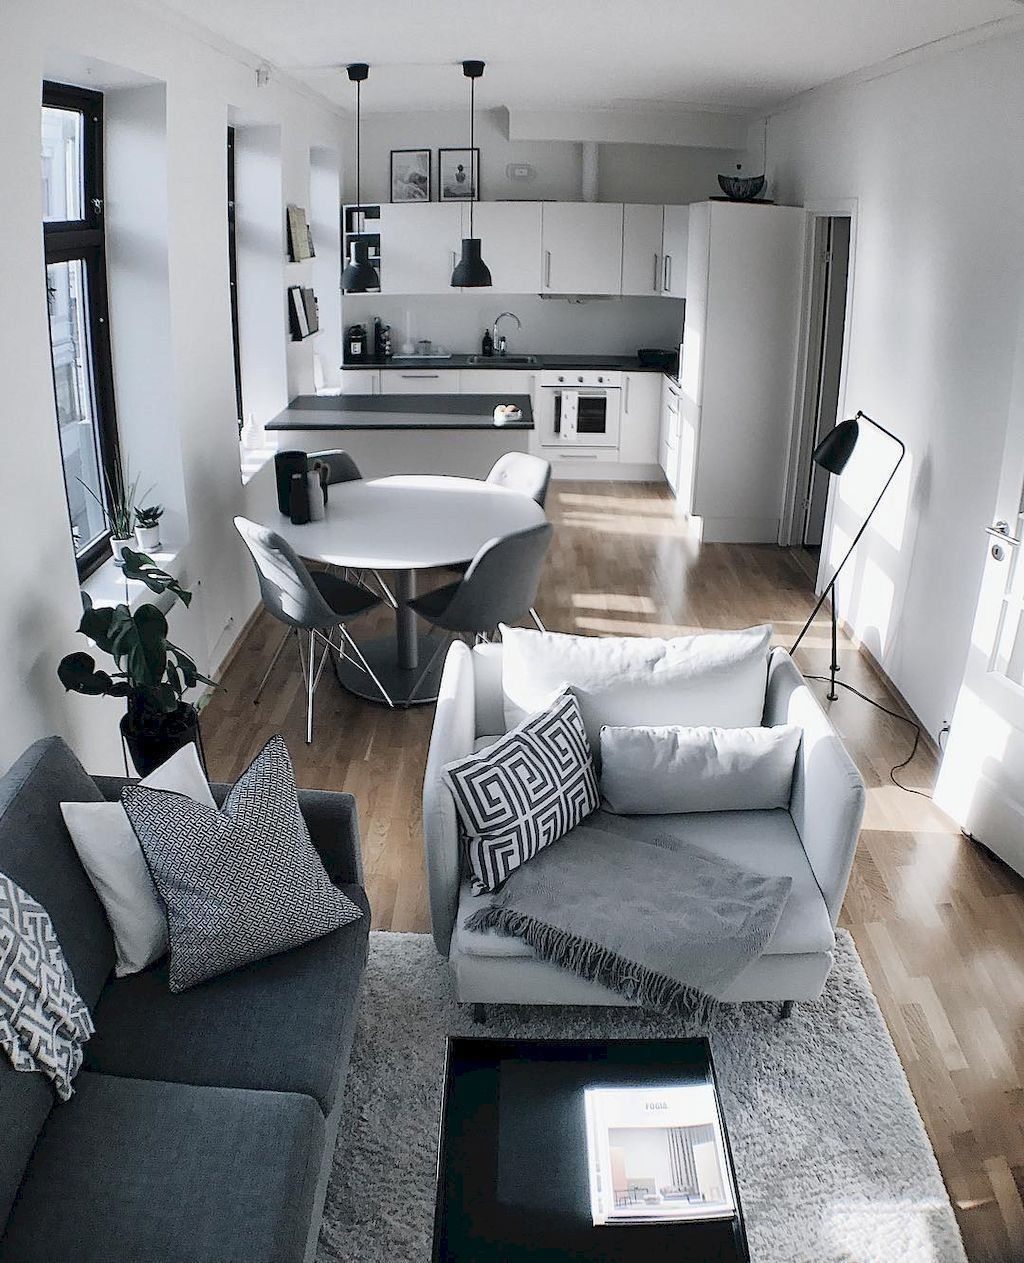 Awesome Apartment Decorating Ideas On A Budget 25 | Home ...